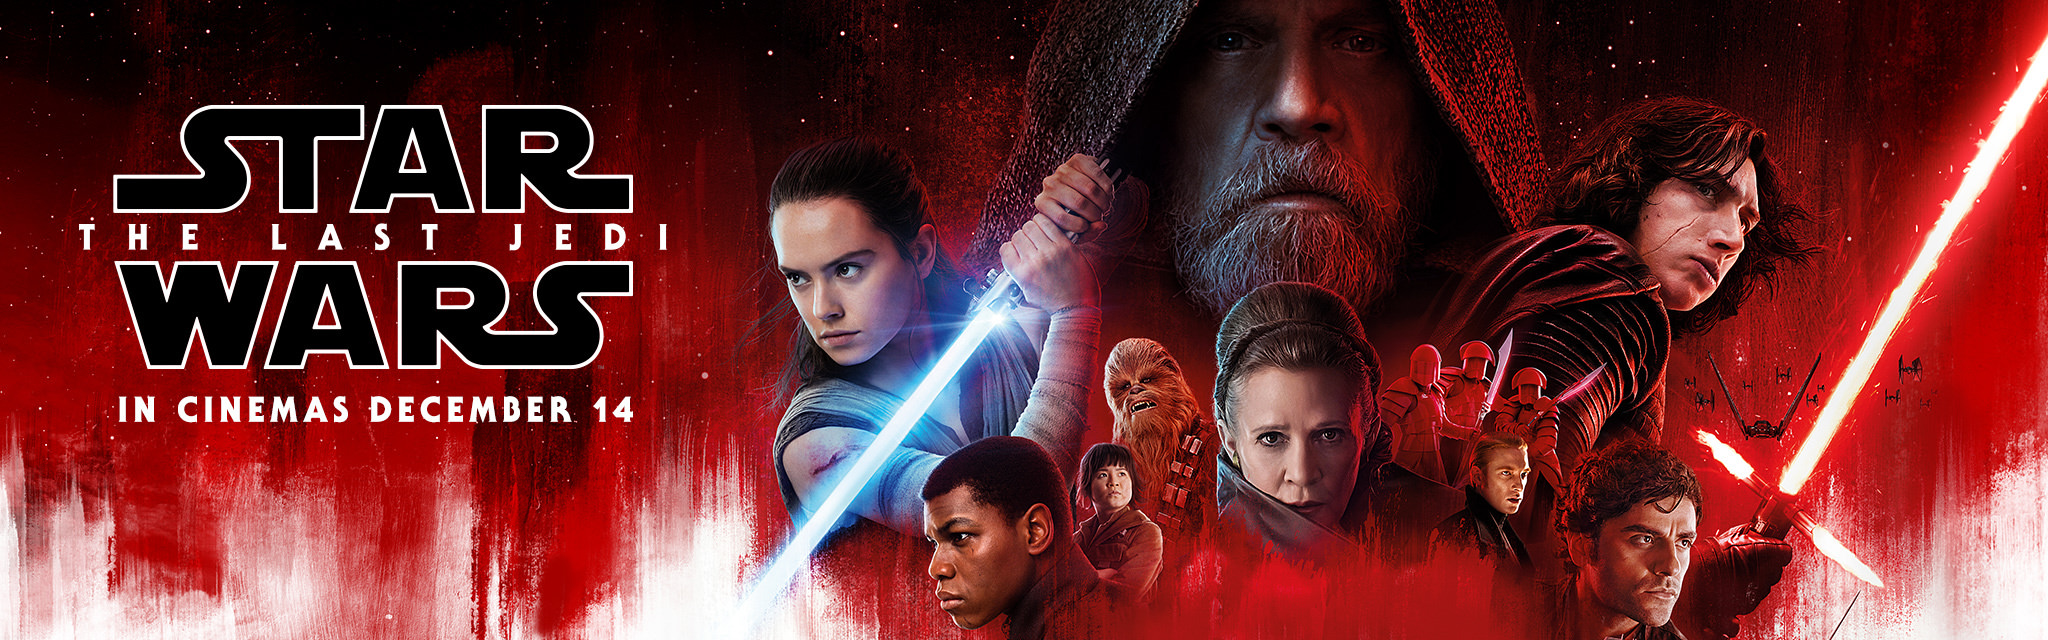 MOVIE REVIEW – STAR WARS: THE LAST JEDI